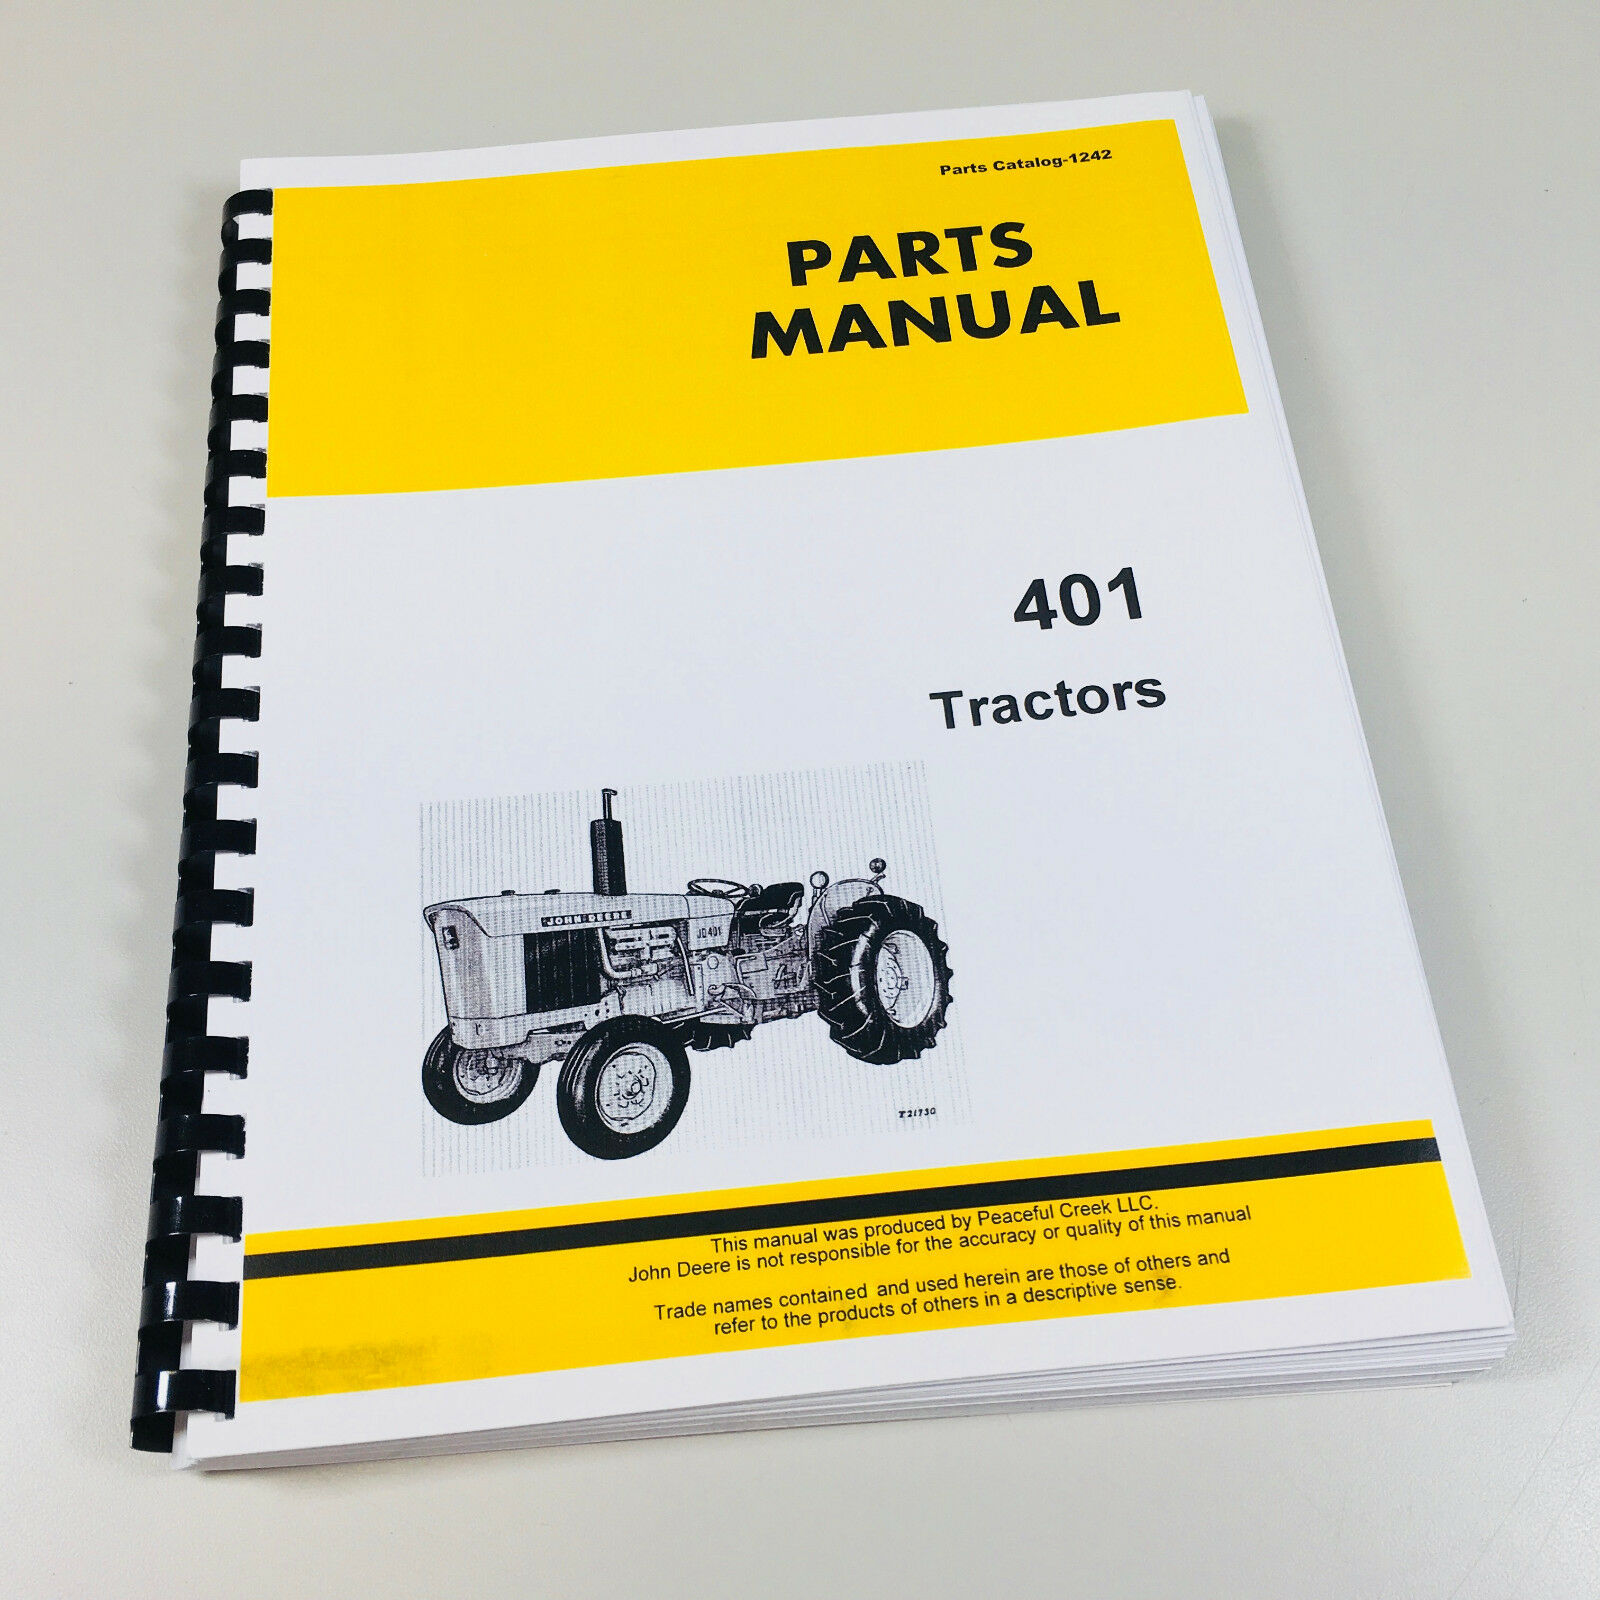 Parts Manual For John Deere 401 Jd401 Tractor Catalog Exploded Views  Assembly 1 of 4FREE Shipping ...